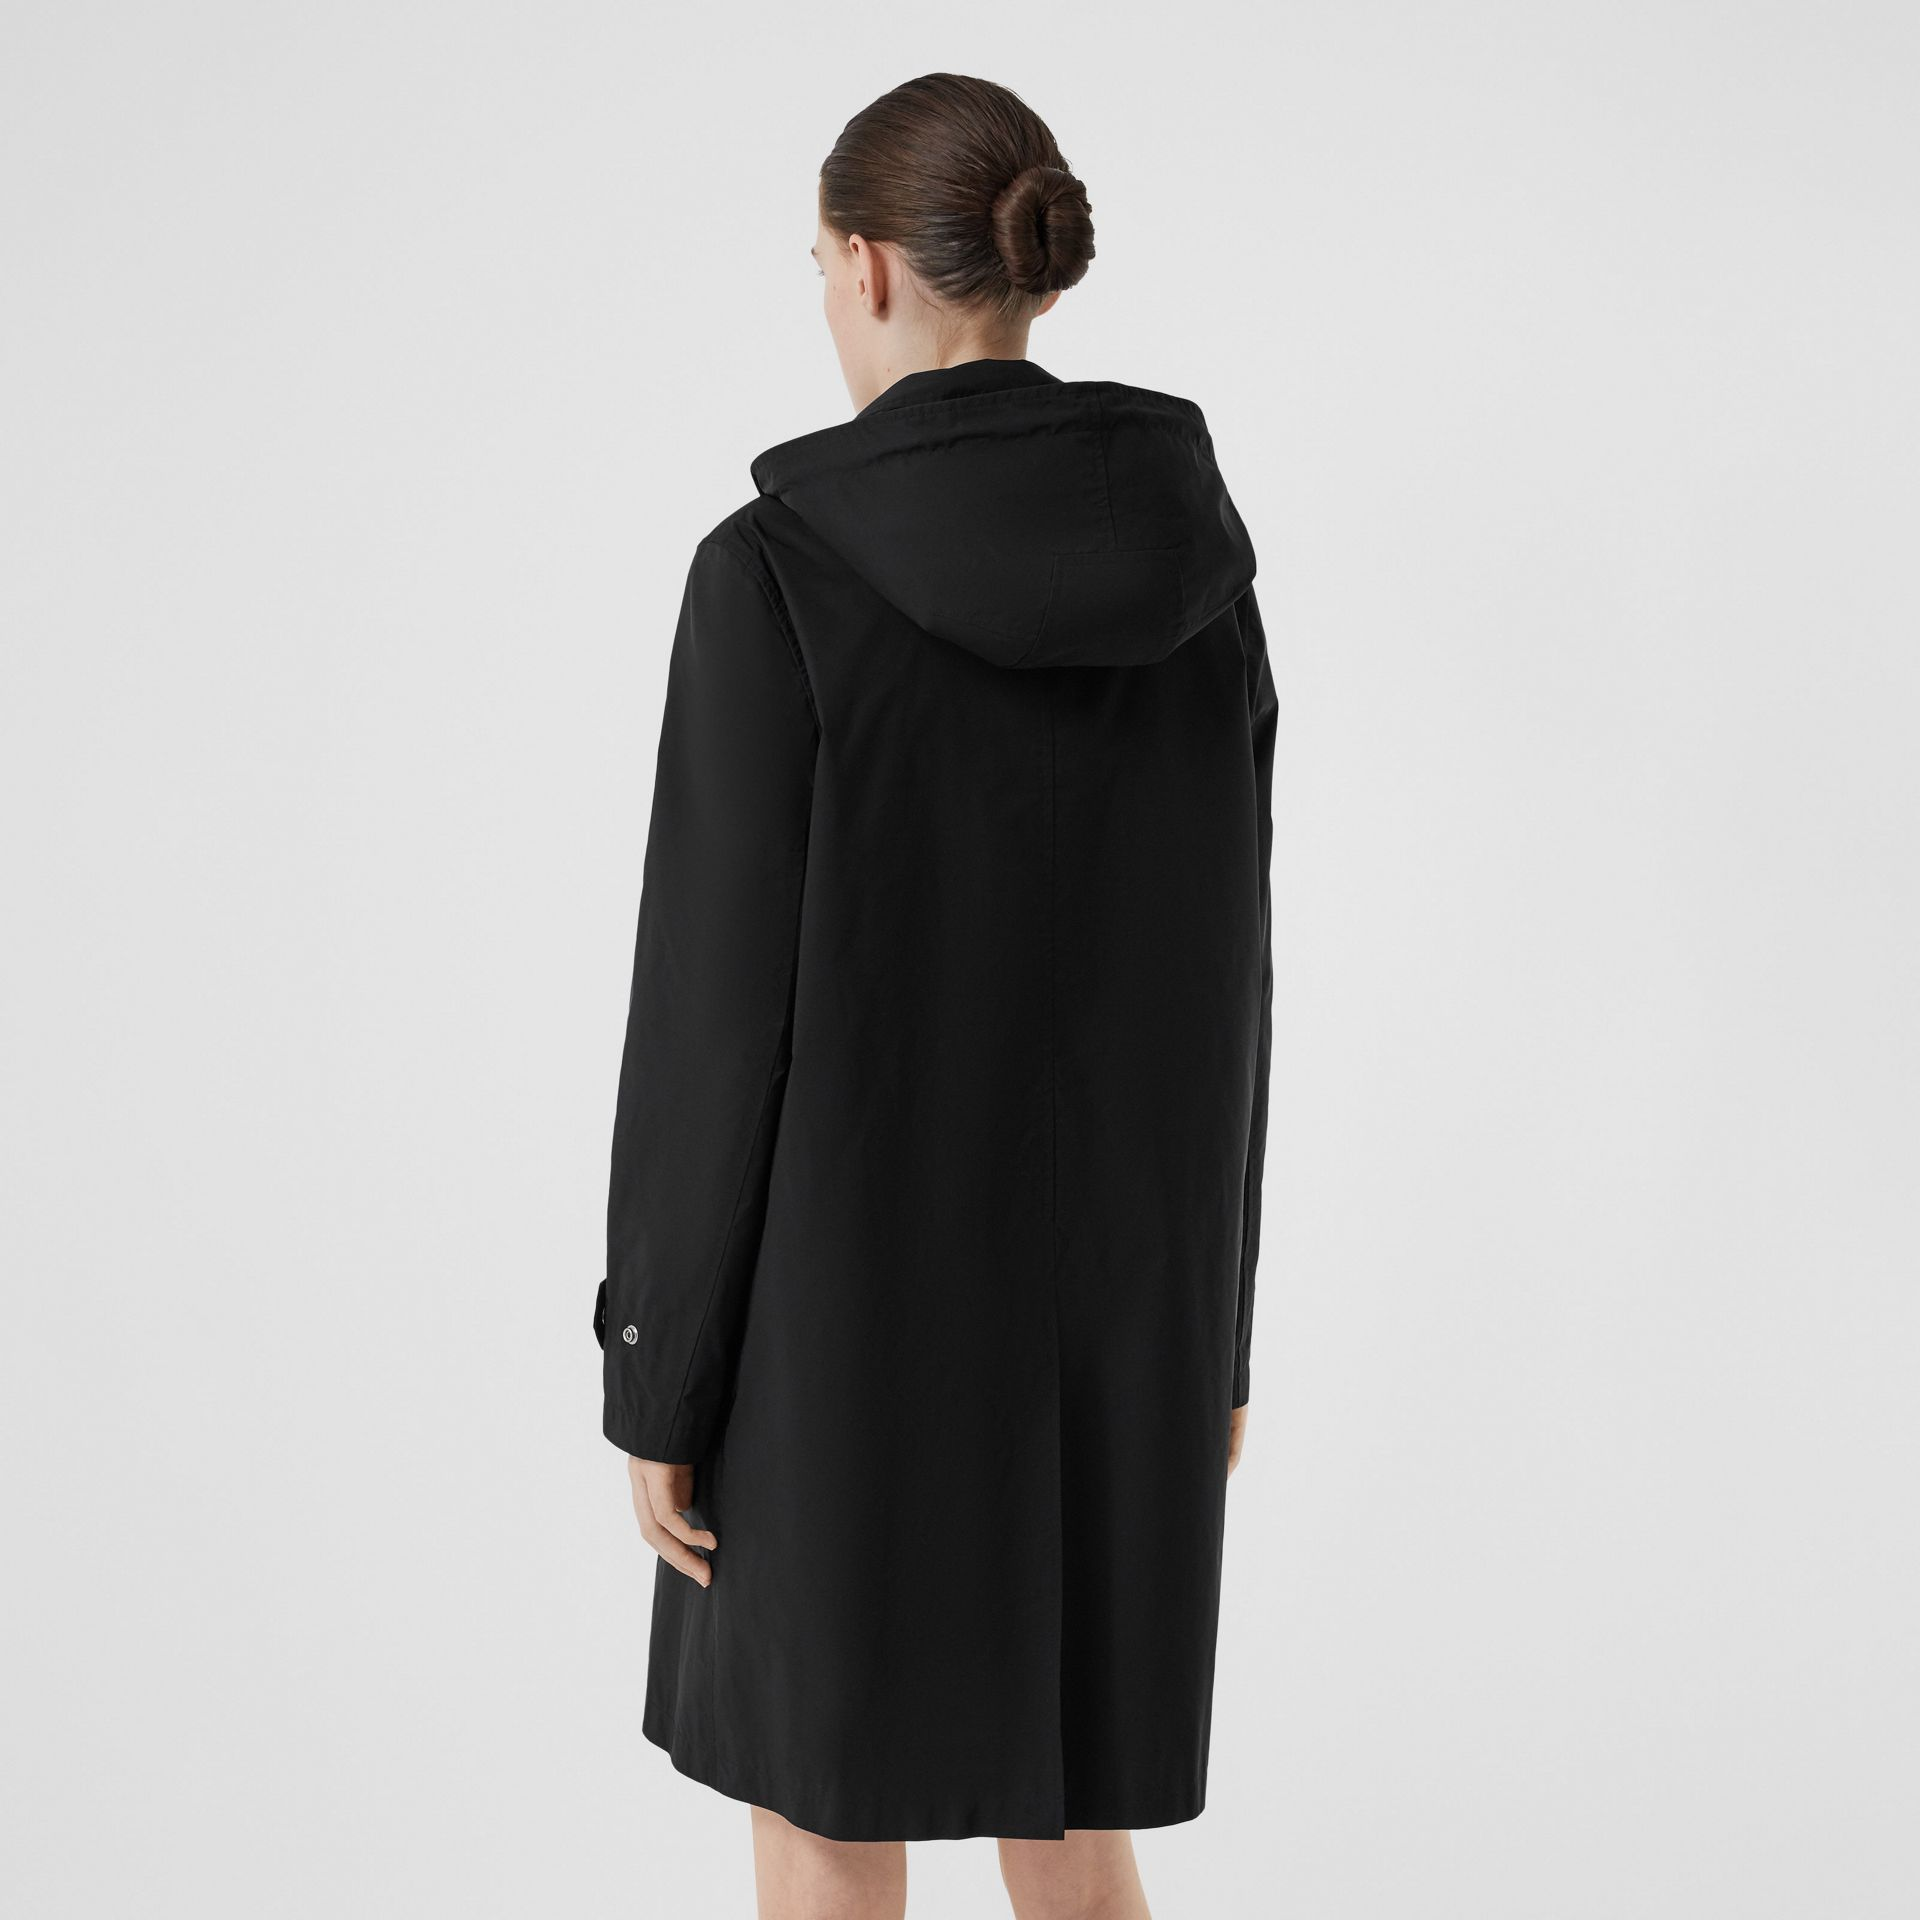 Detachable Hood Shape-memory Taffeta Car Coat in Black - Women | Burberry - gallery image 2